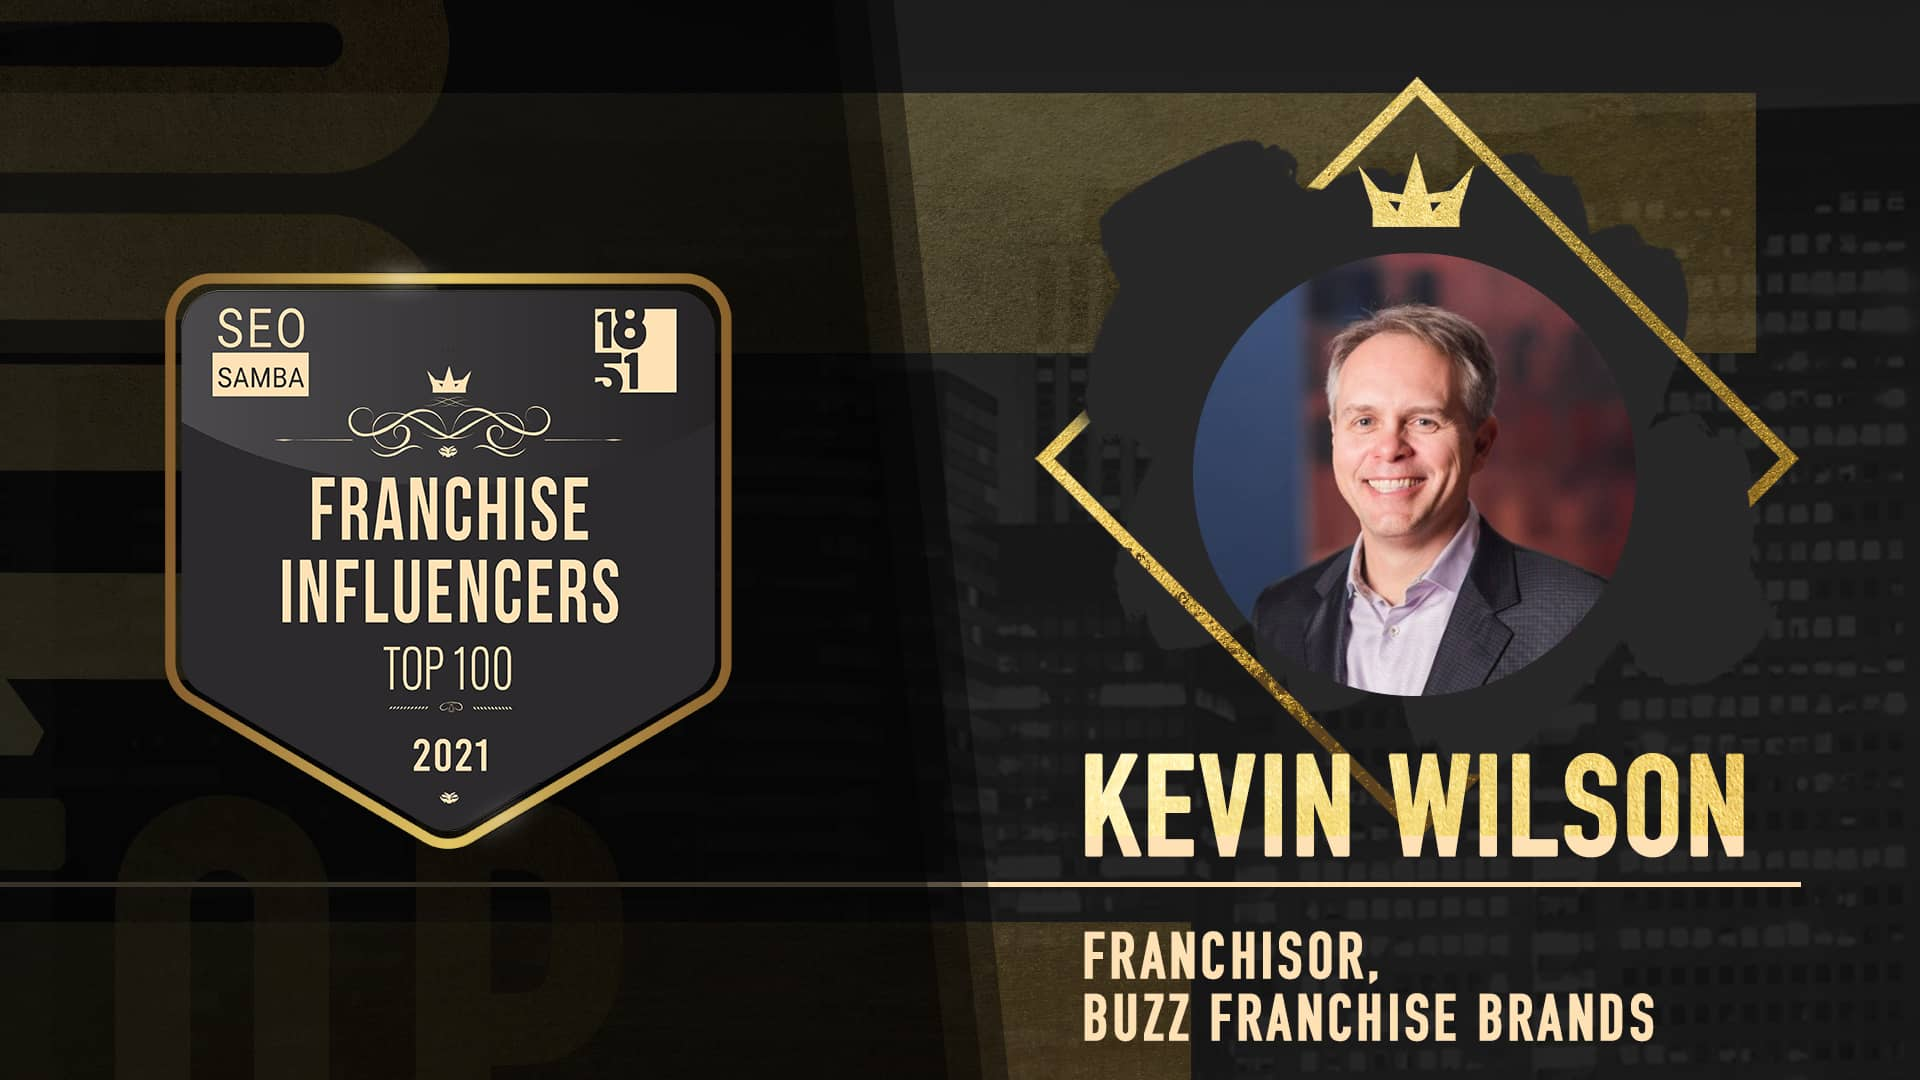 kevin-wilson-buzz-franchise-brands